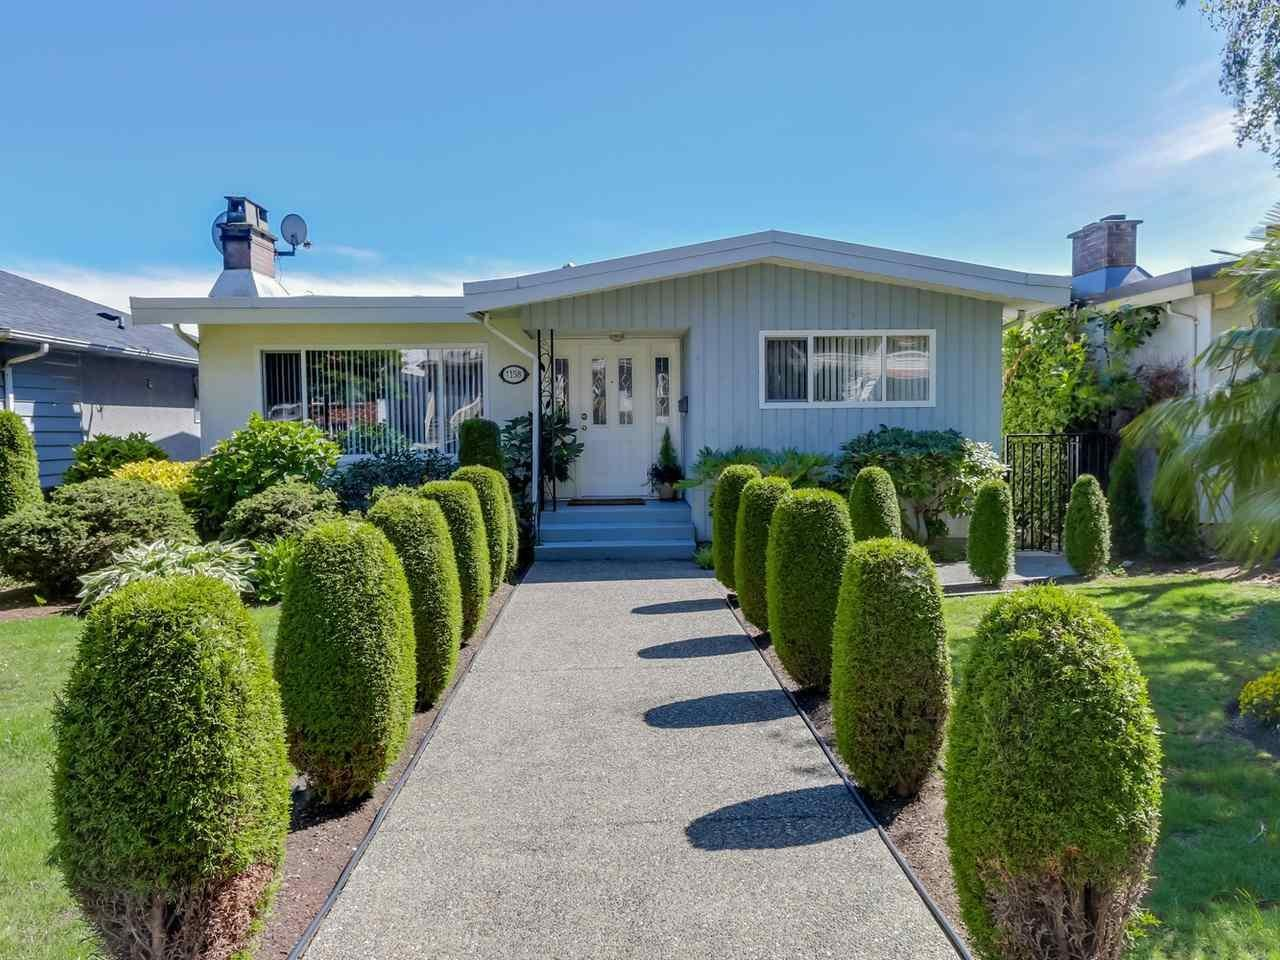 R2082544 - 1158 E 62ND AVENUE, South Vancouver, Vancouver, BC - House/Single Family